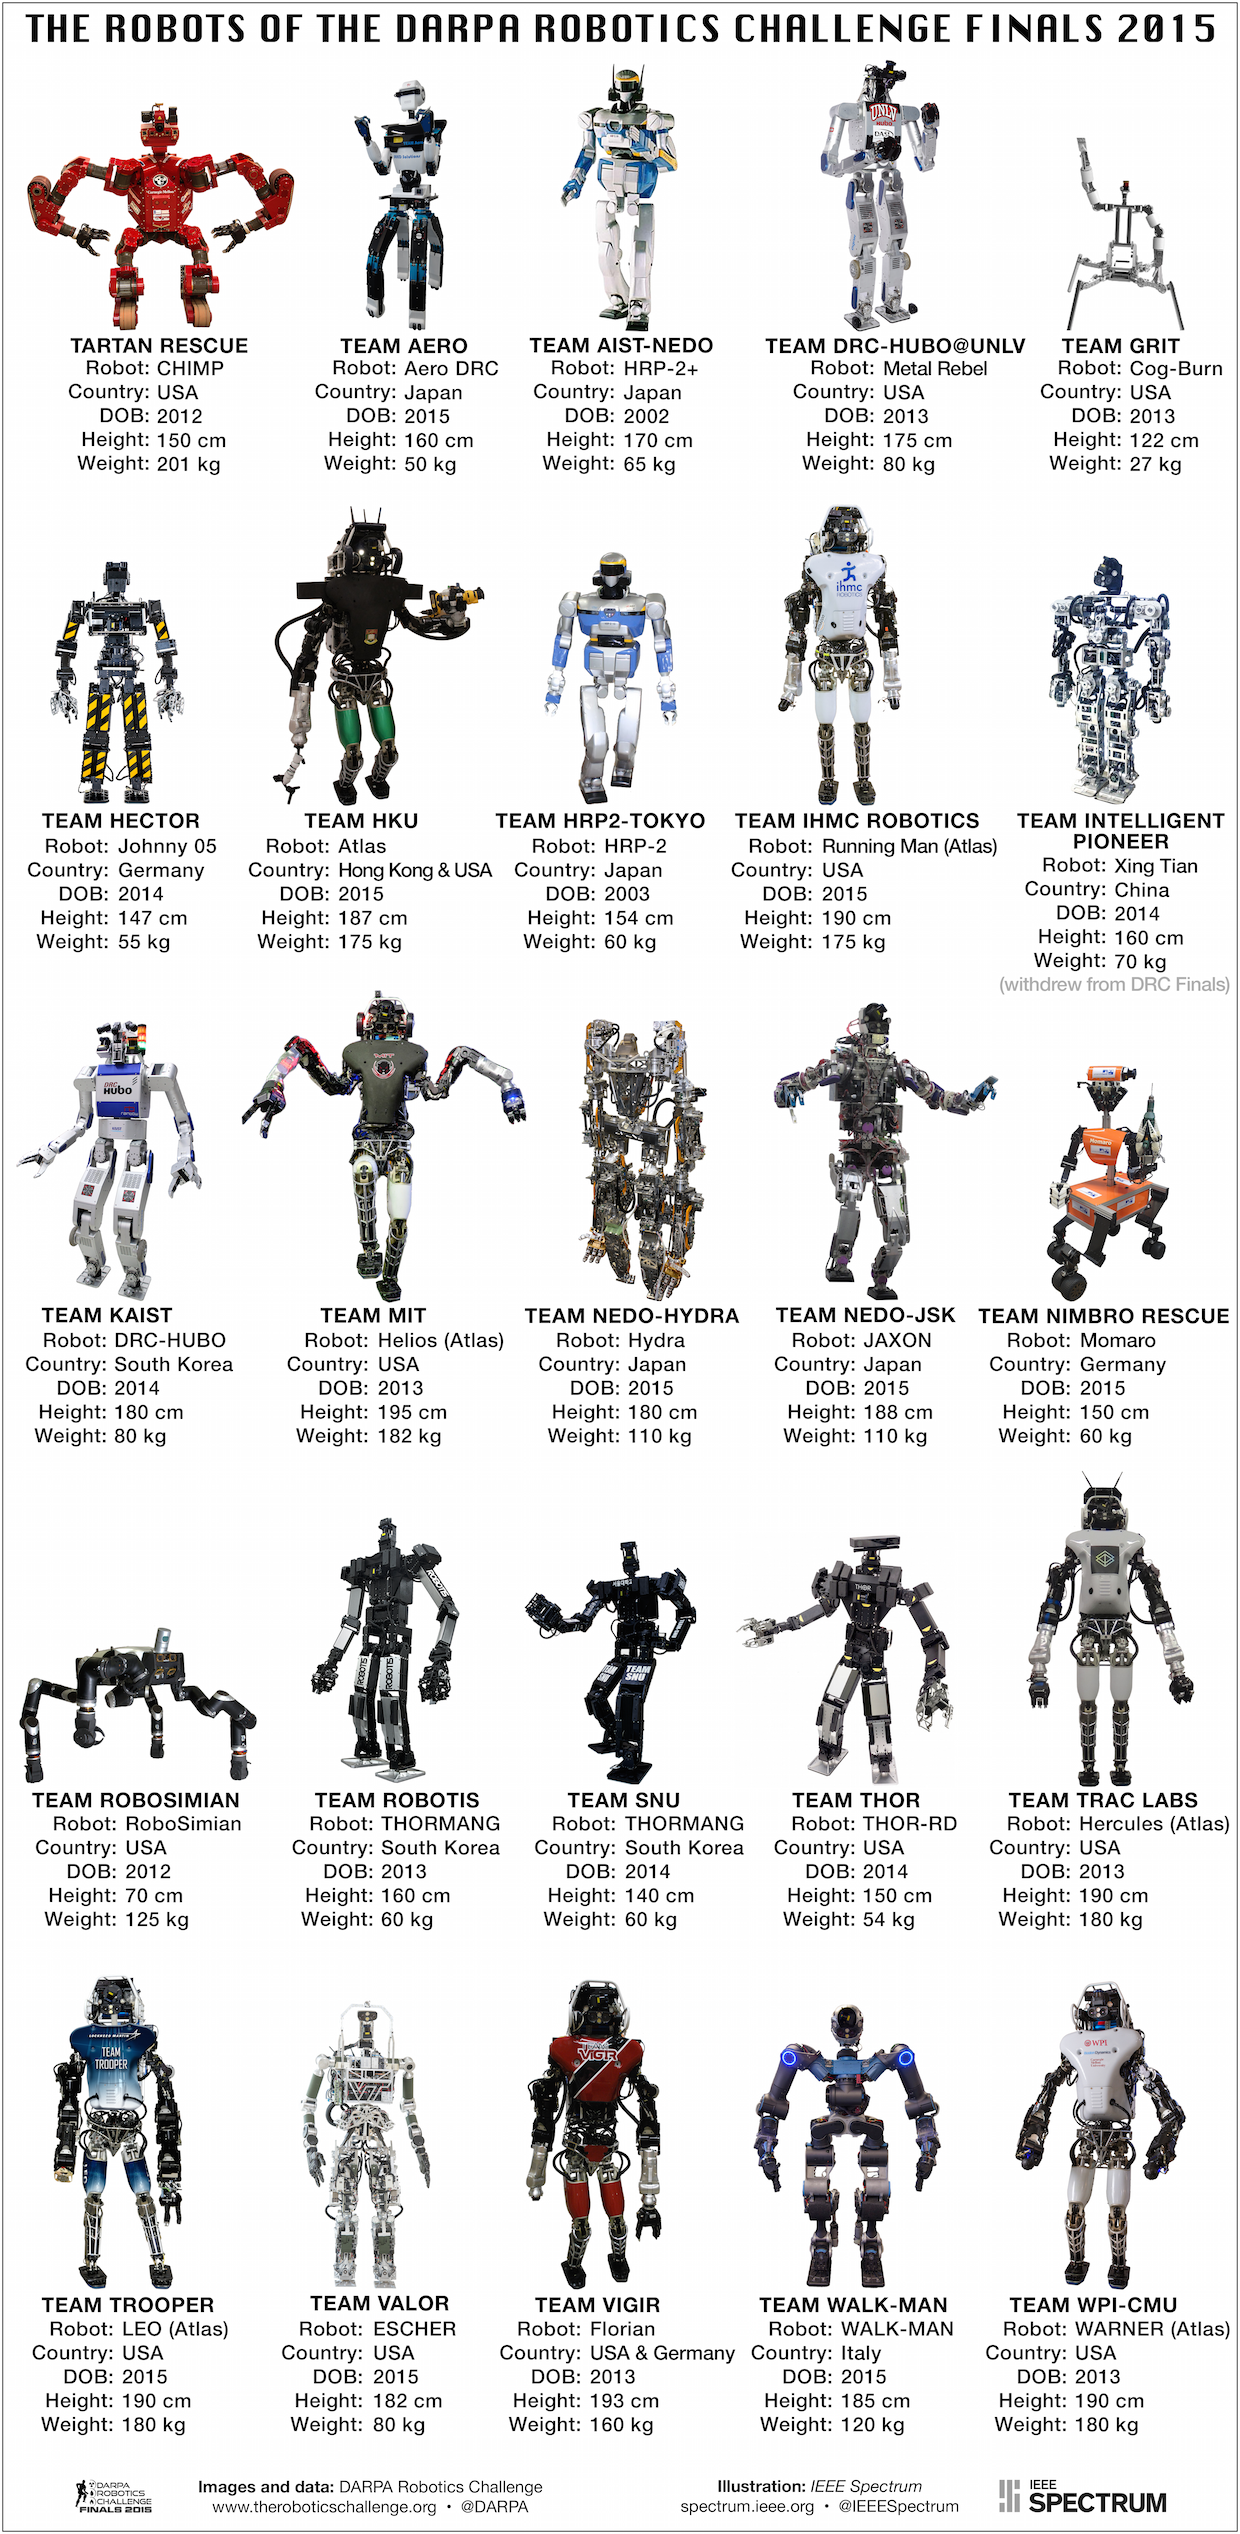 The Robits of DARPA Robotics Challenge Finals #checkitout Hashtags